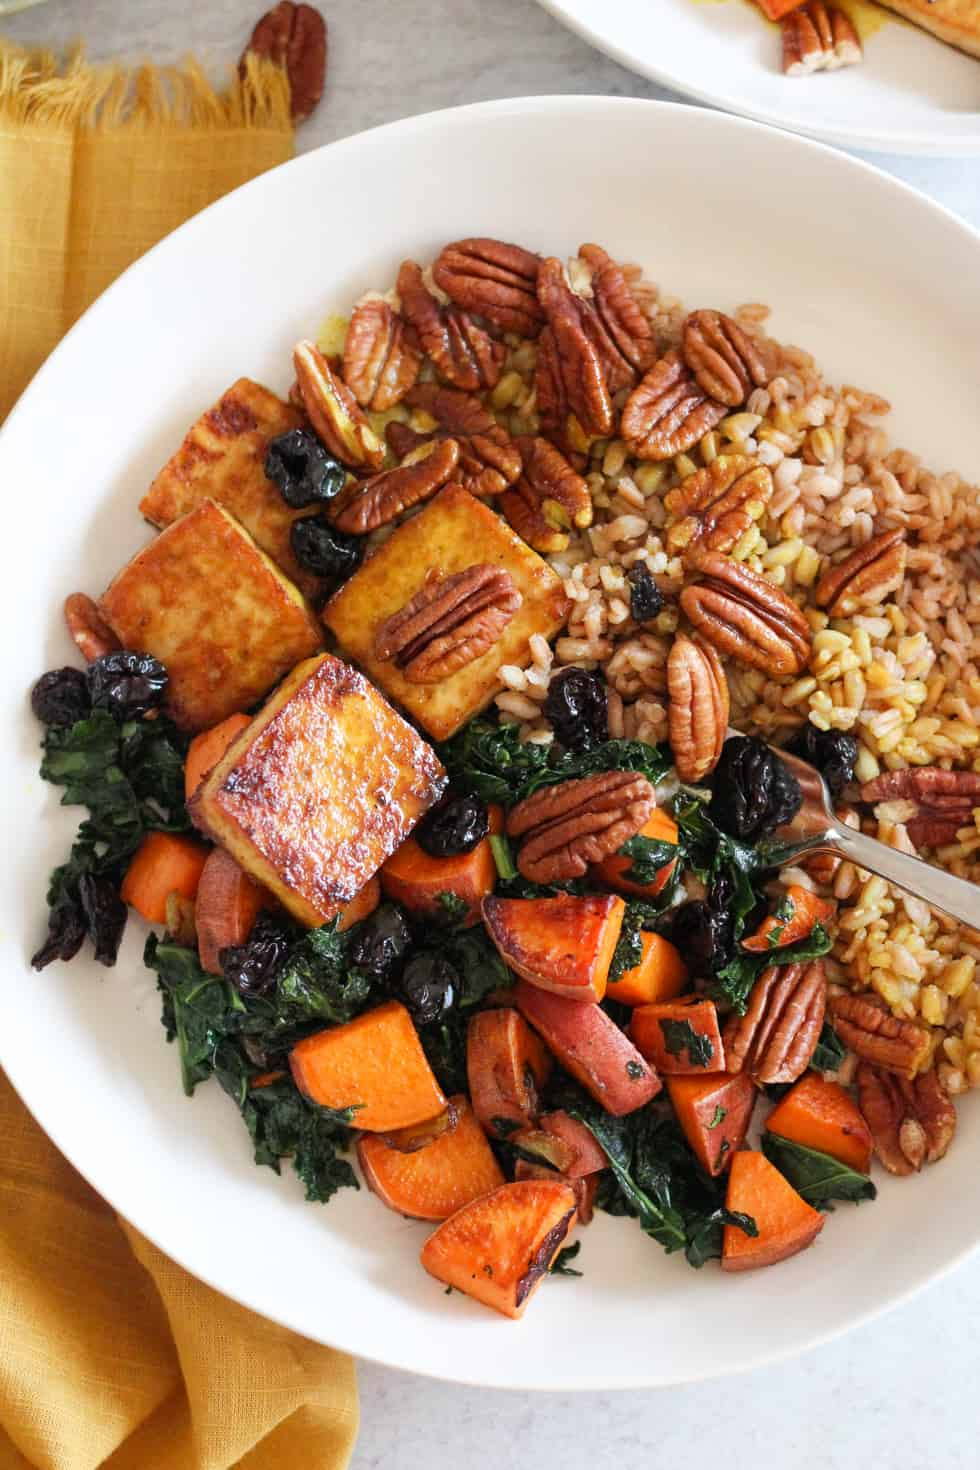 Baked tofu bowls with sweet potatoes and kale in white bowl with yellow napkin.